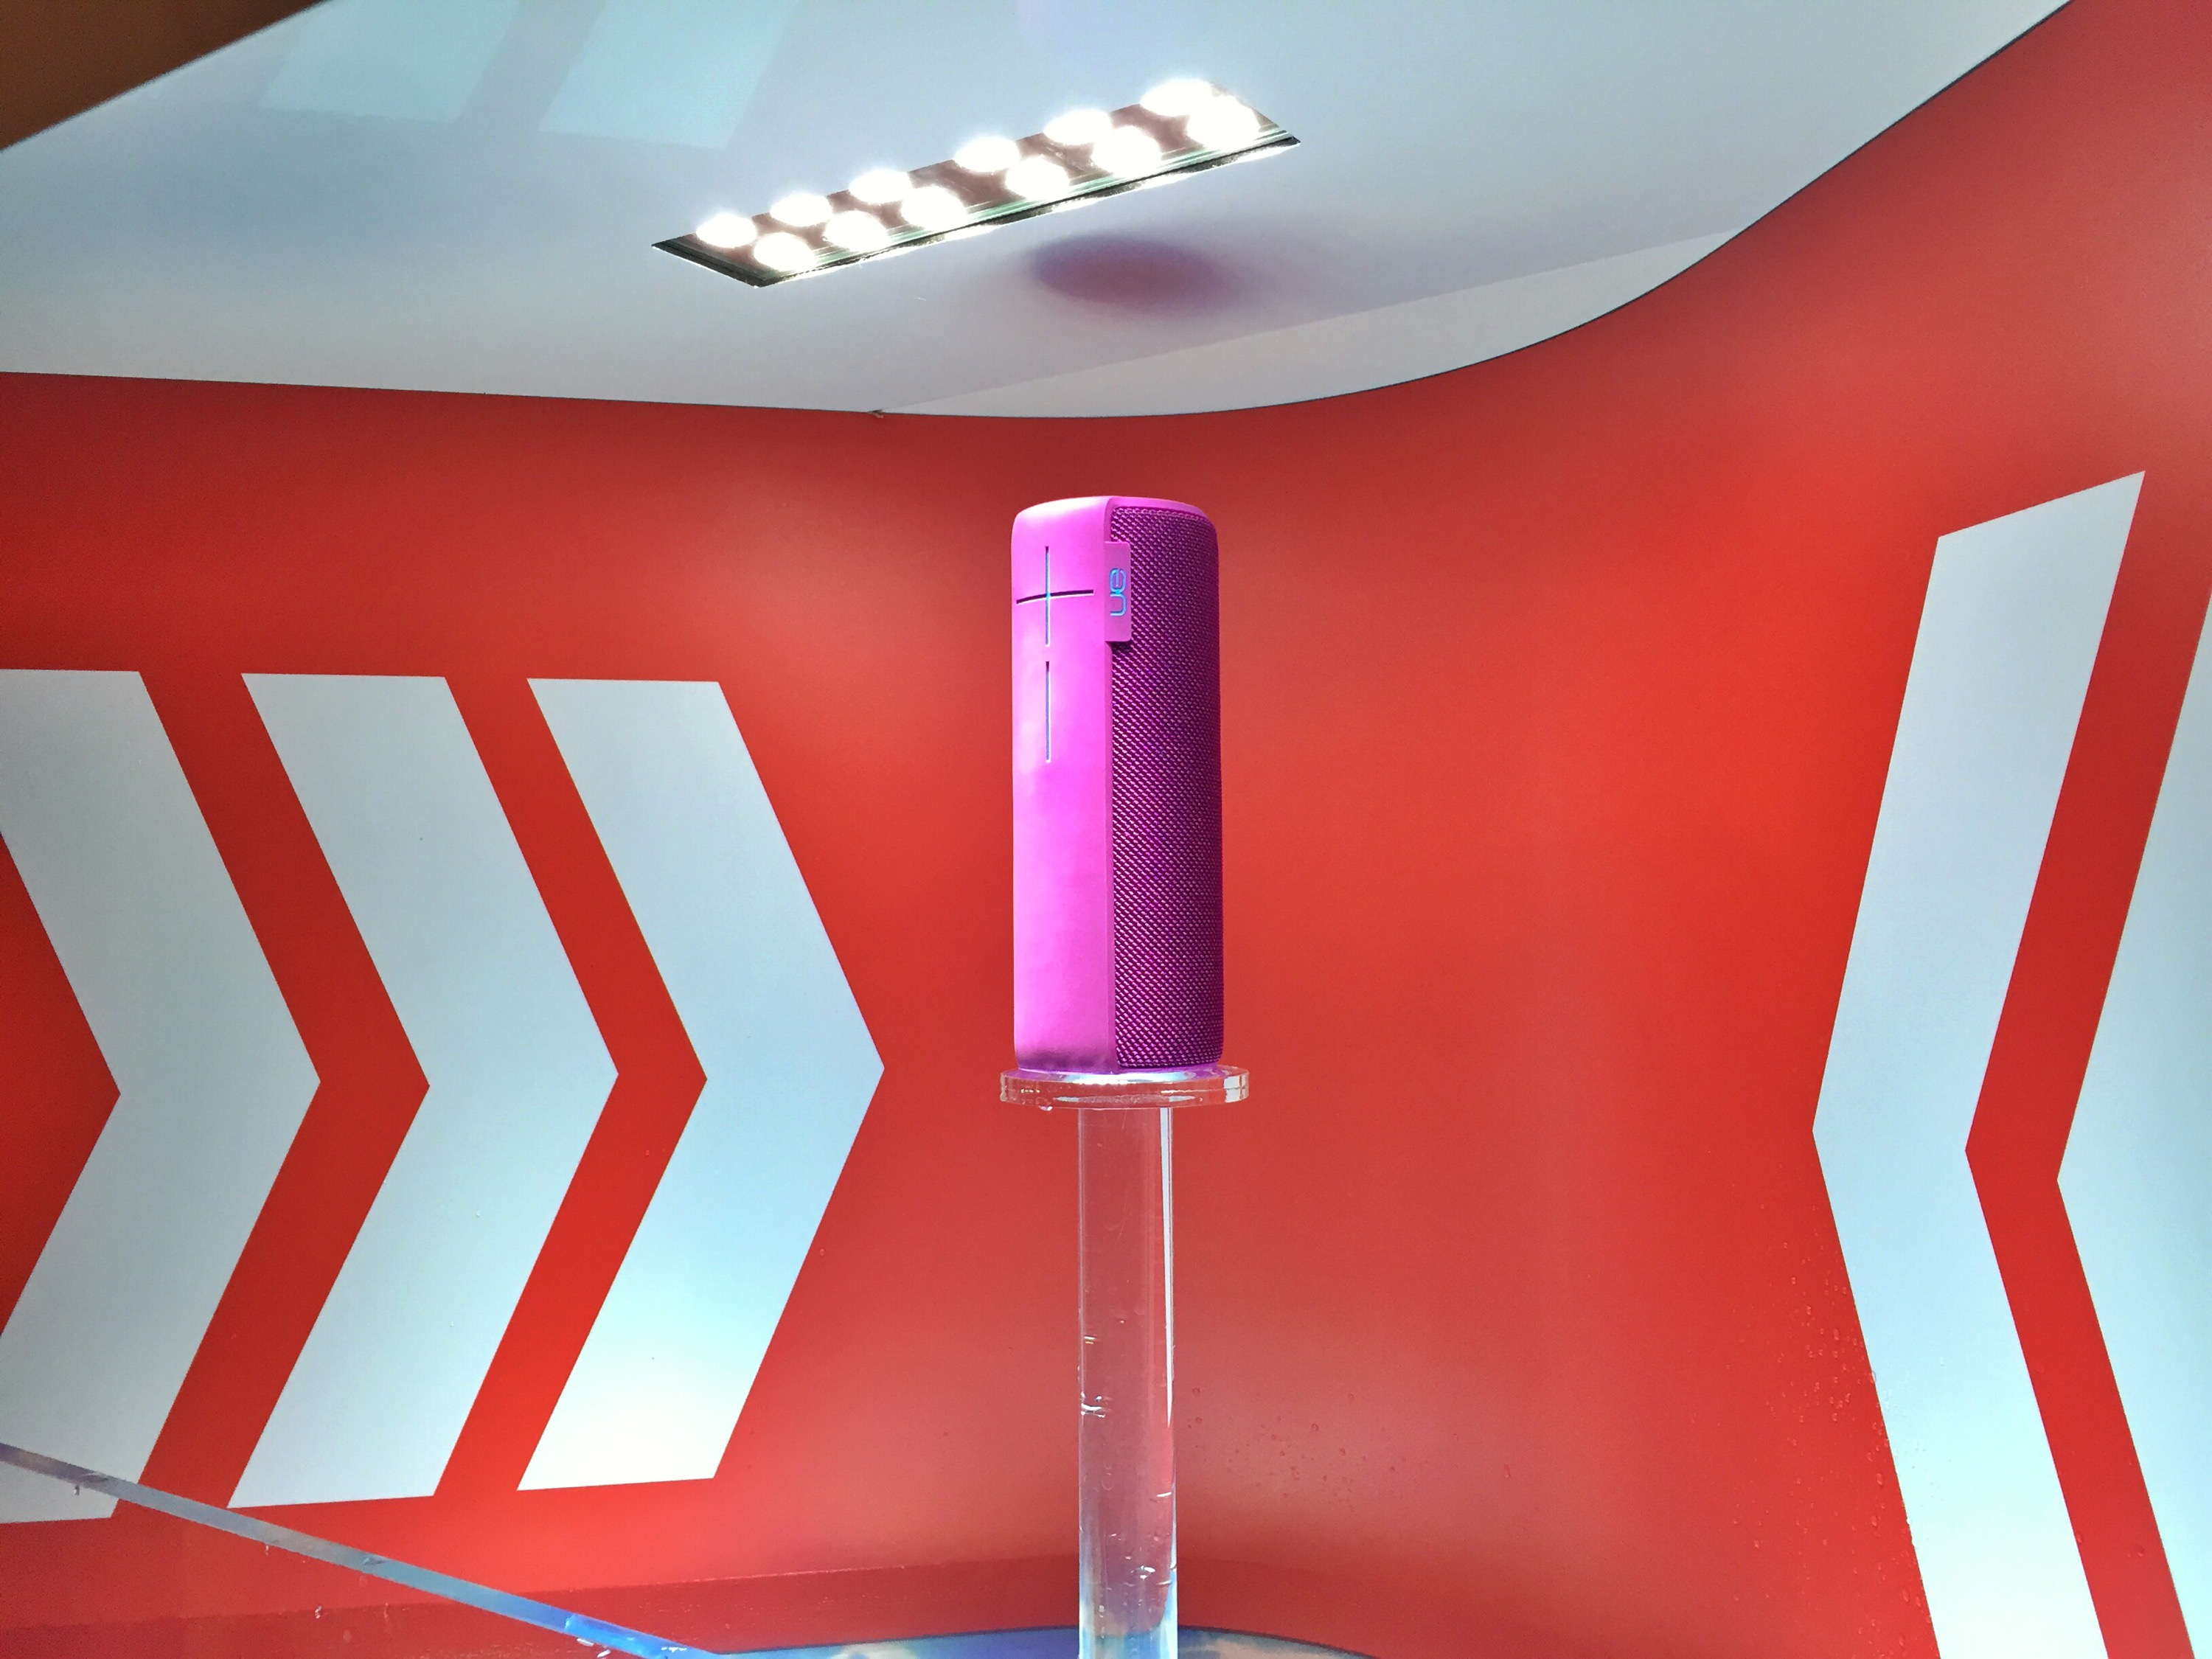 UE's Megaboom speaker can handle anything — even a trip down a ski slope